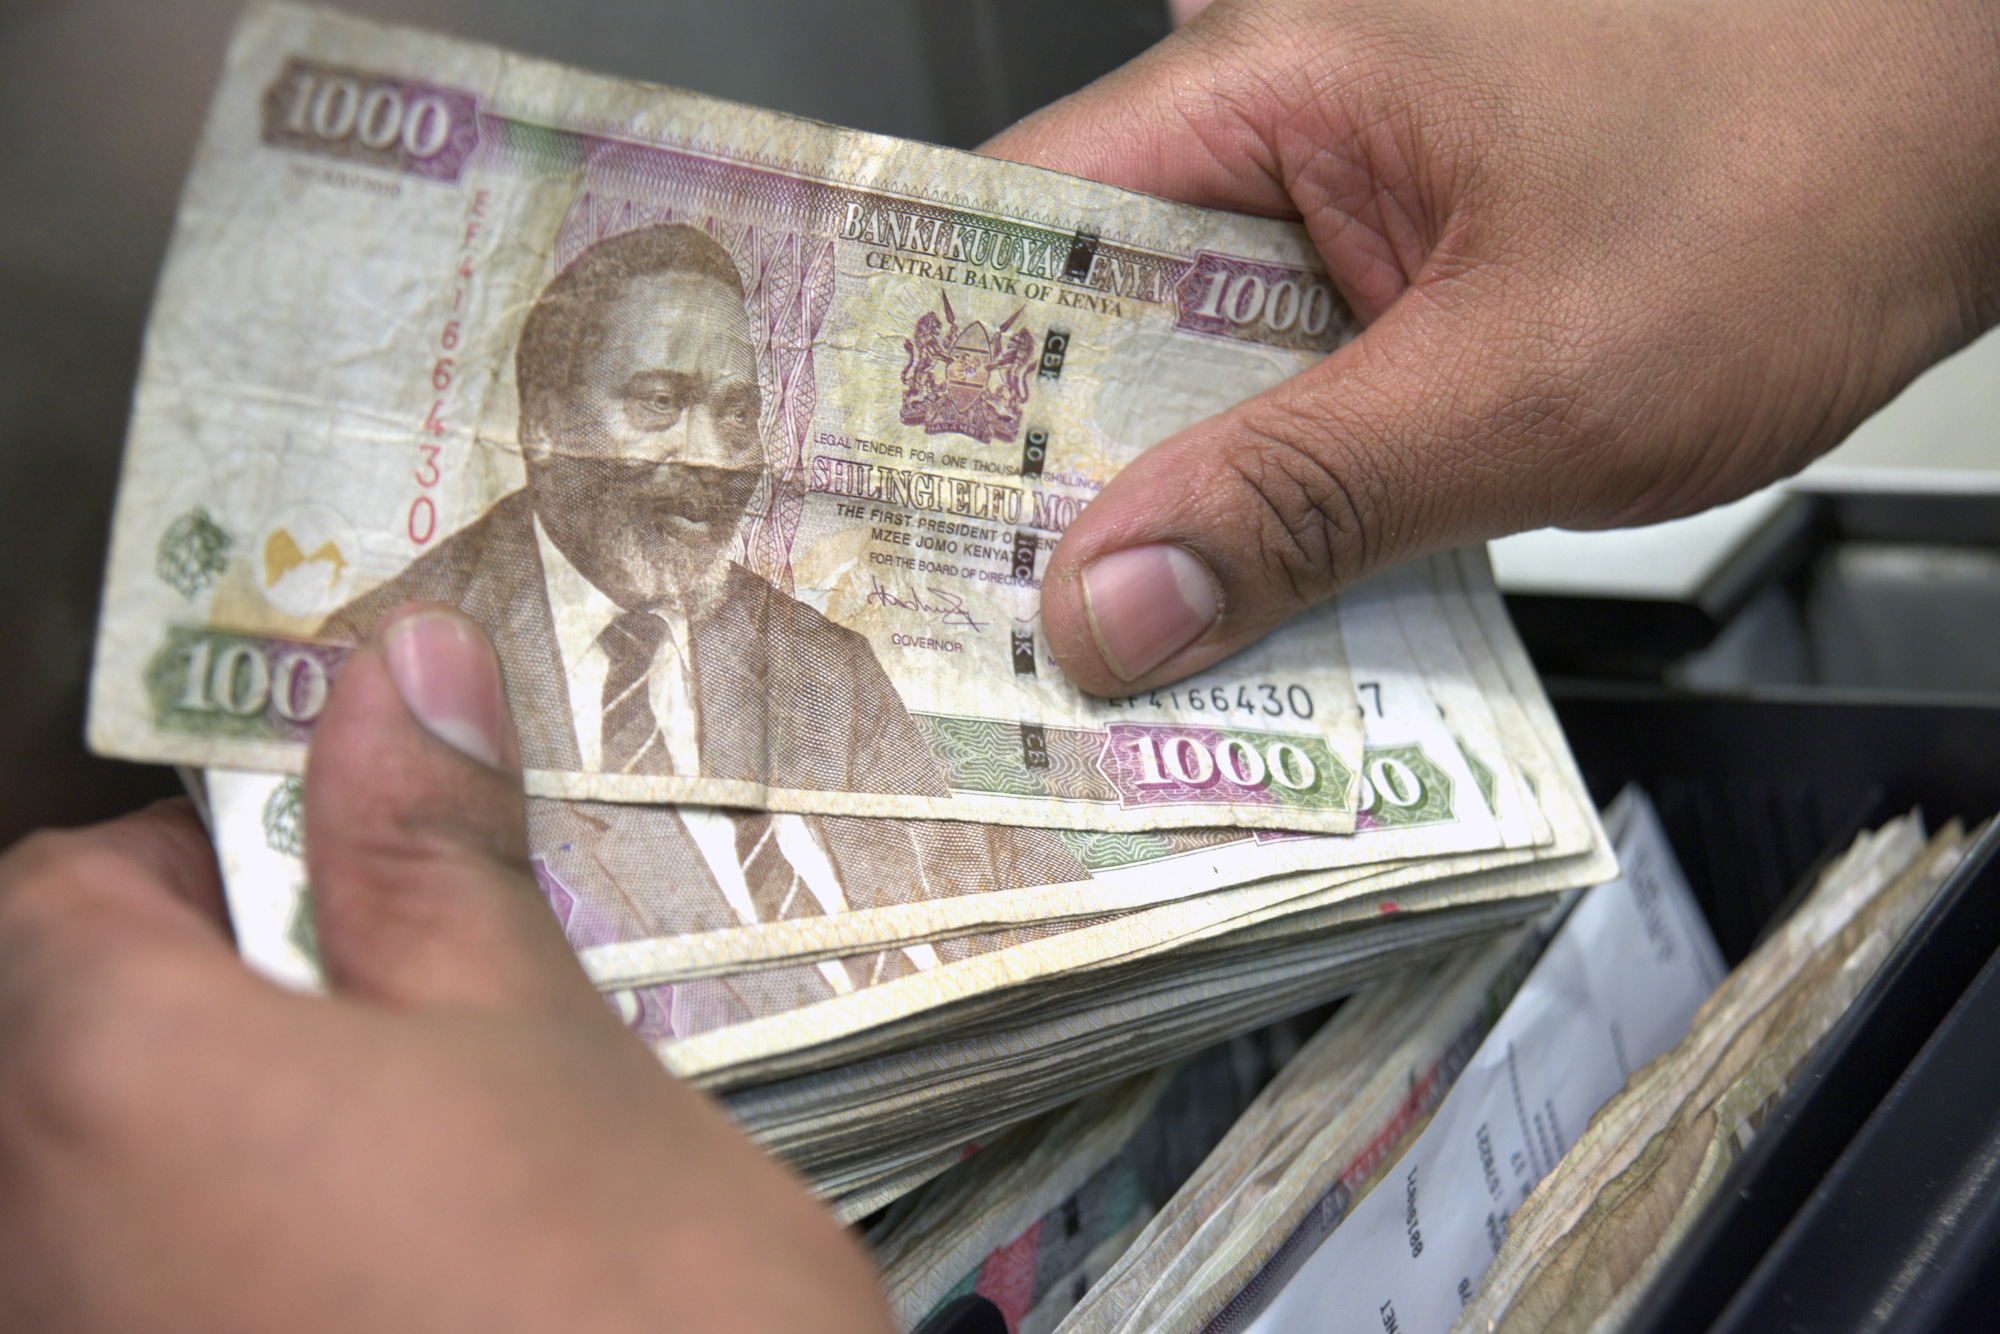 Kenya looks to curb illicit financial flows with demonetisation